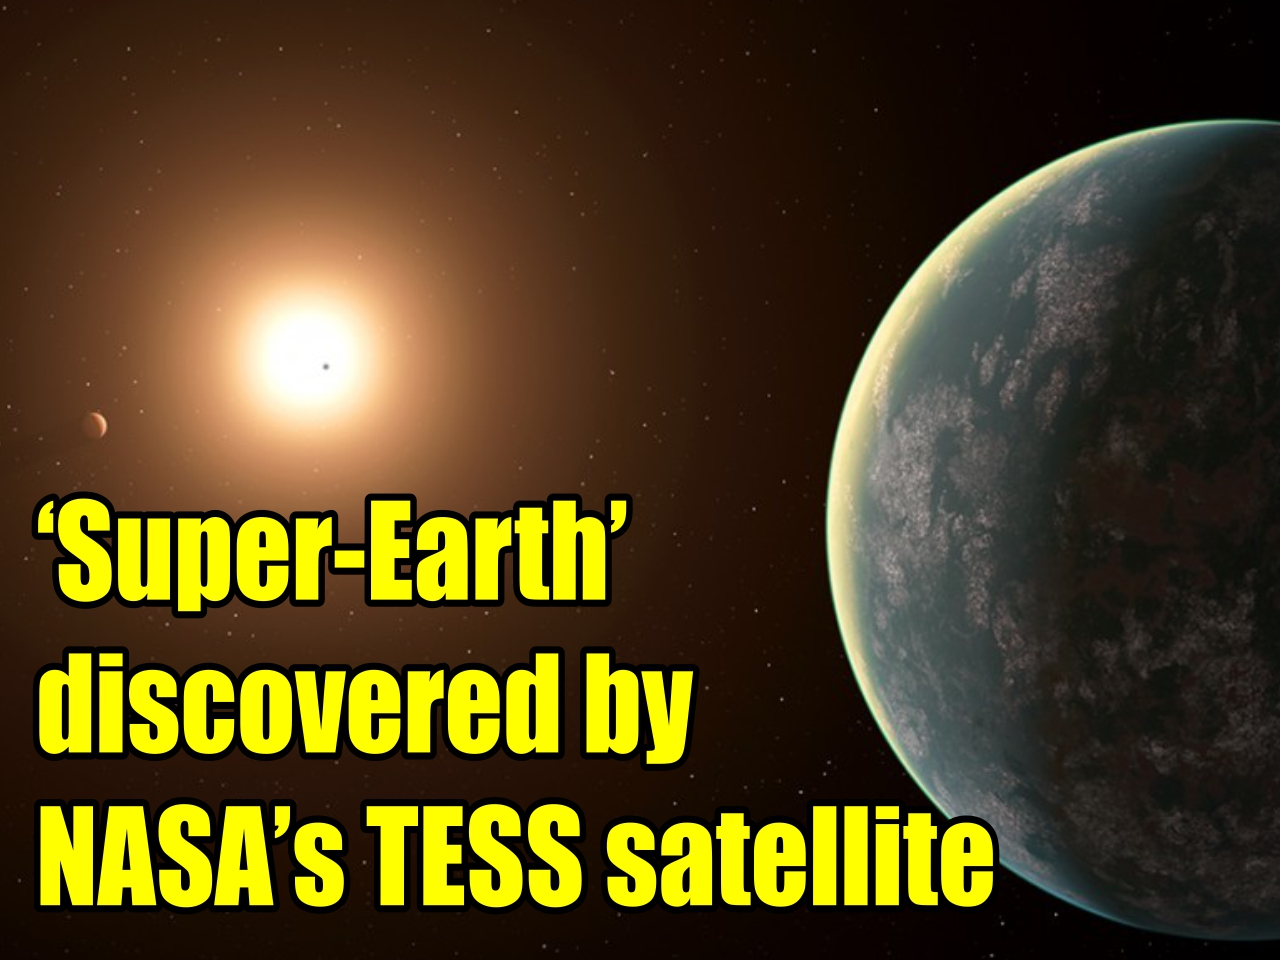 'Super-Earth' discovered by NASA's TESS satellite